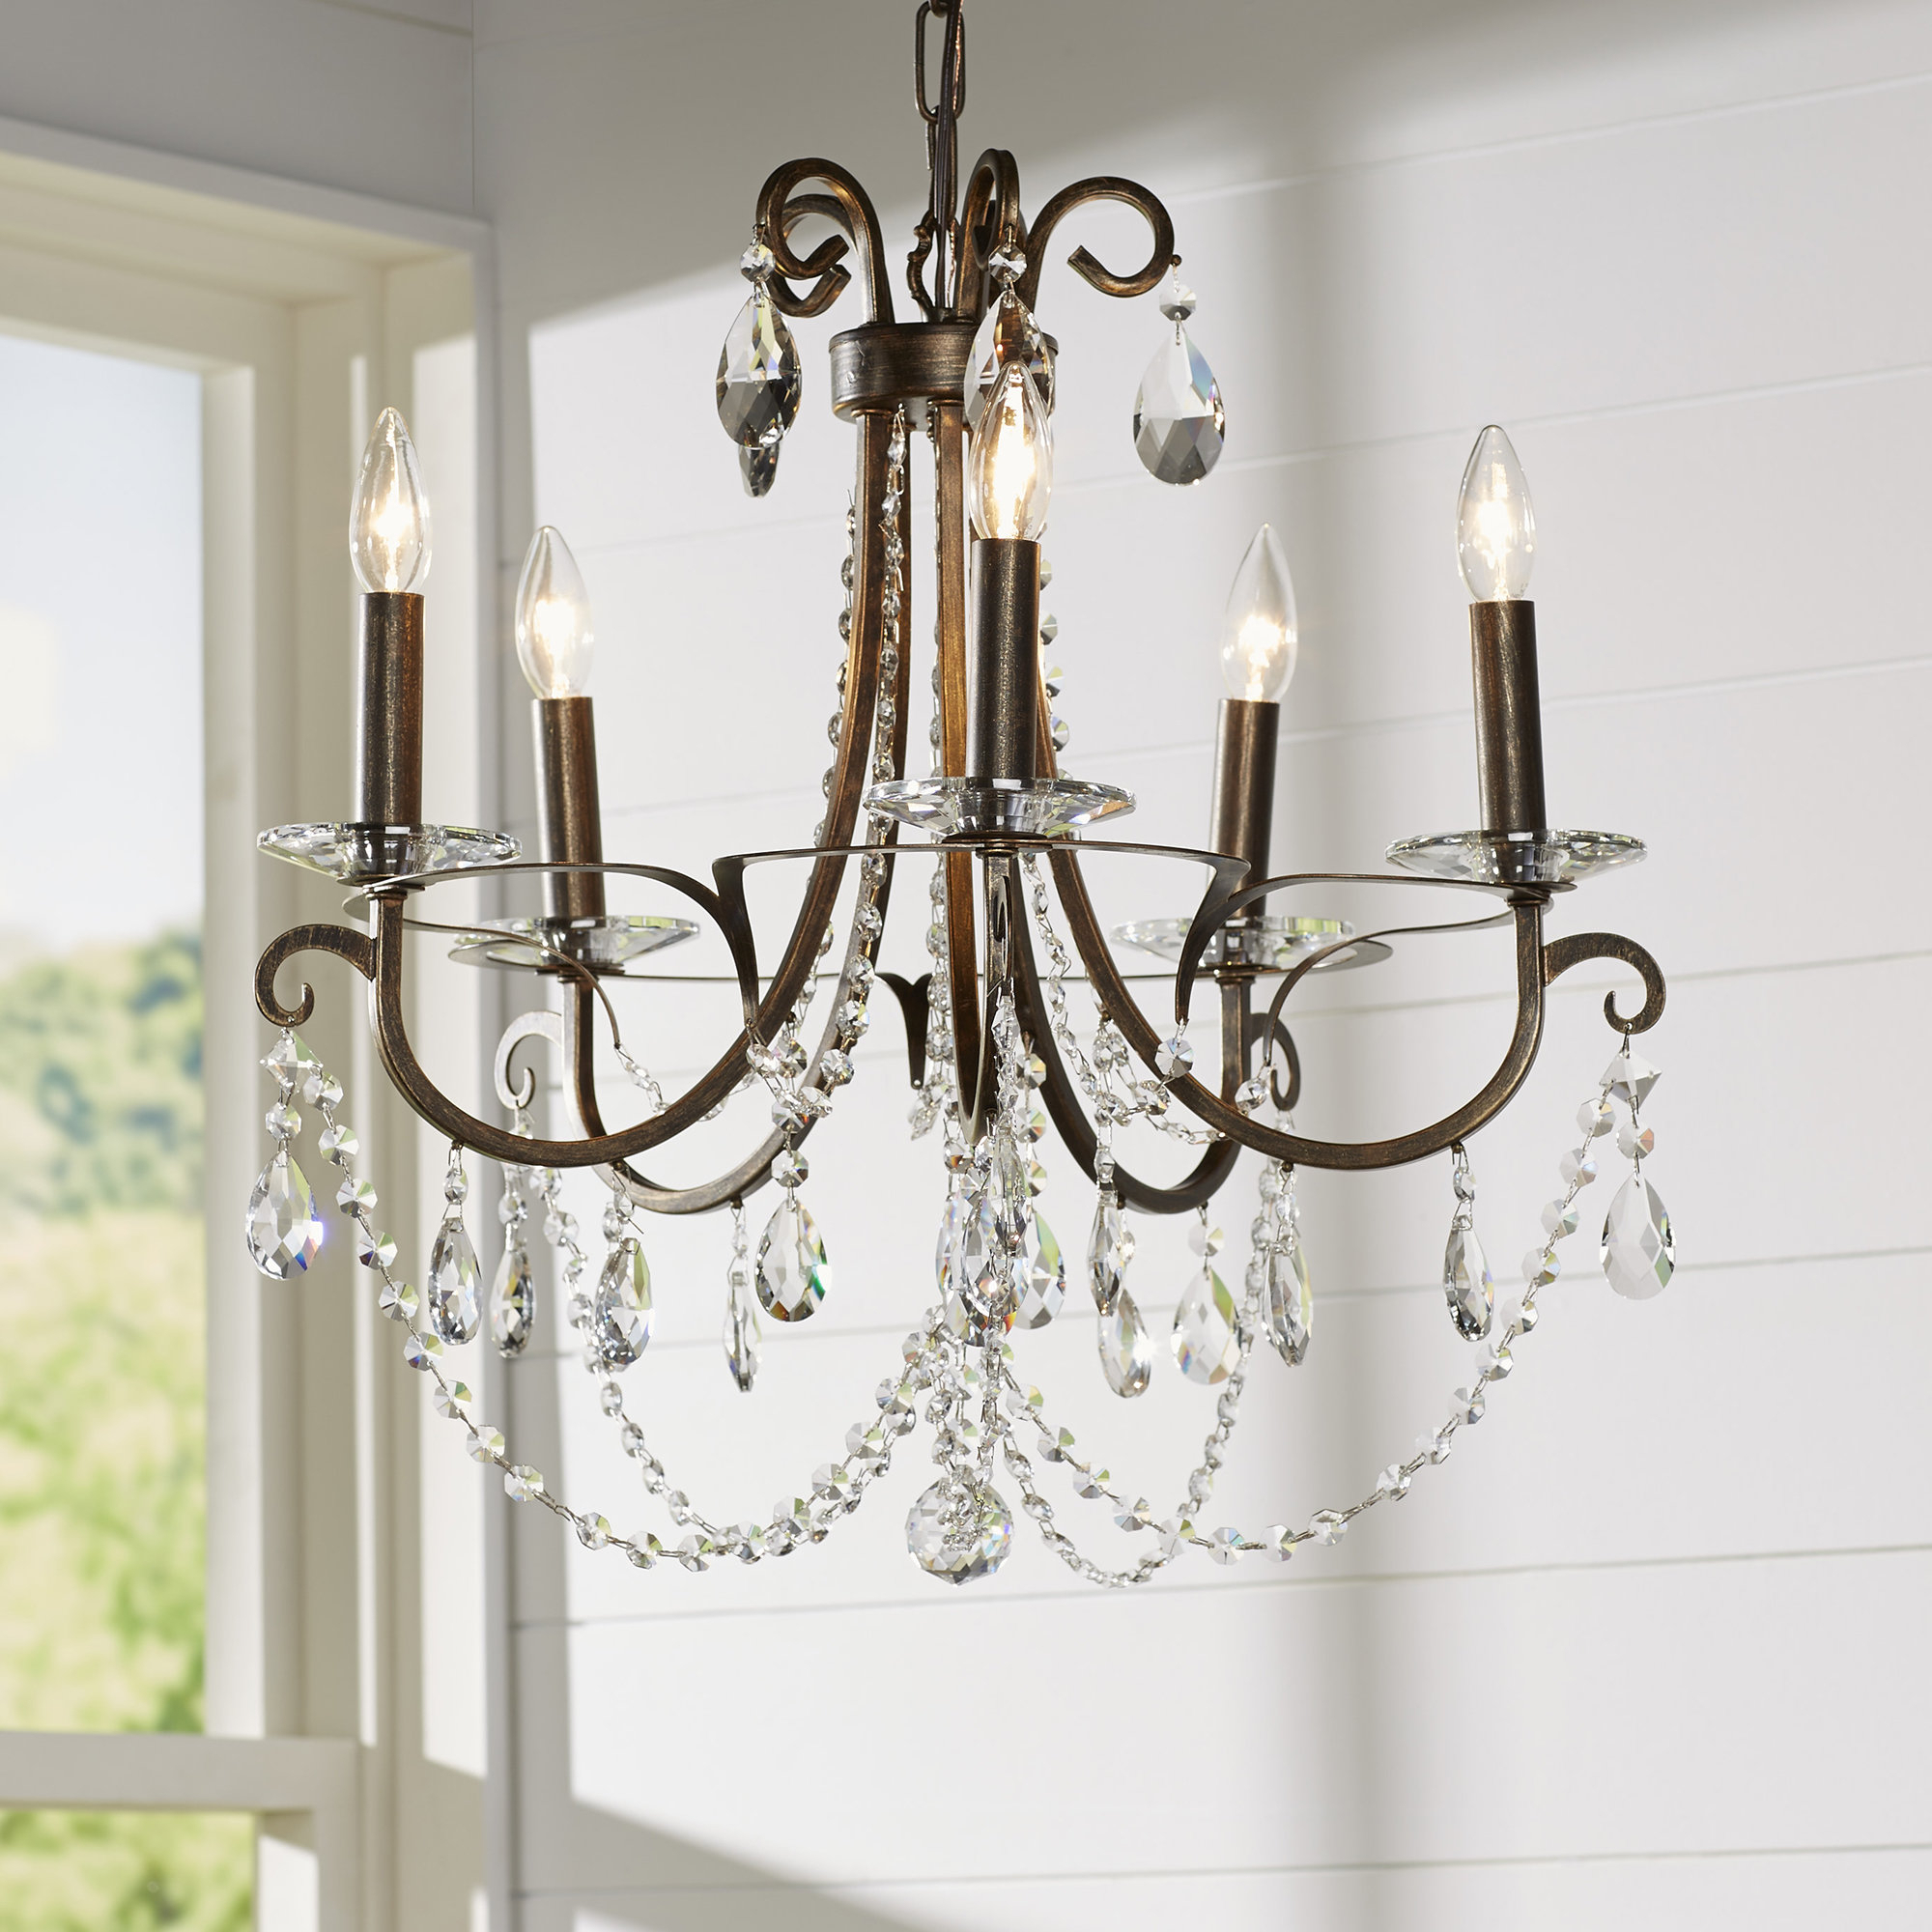 Roesler 5-Light Candle Style Chandelier intended for Shaylee 5-Light Candle Style Chandeliers (Image 18 of 30)